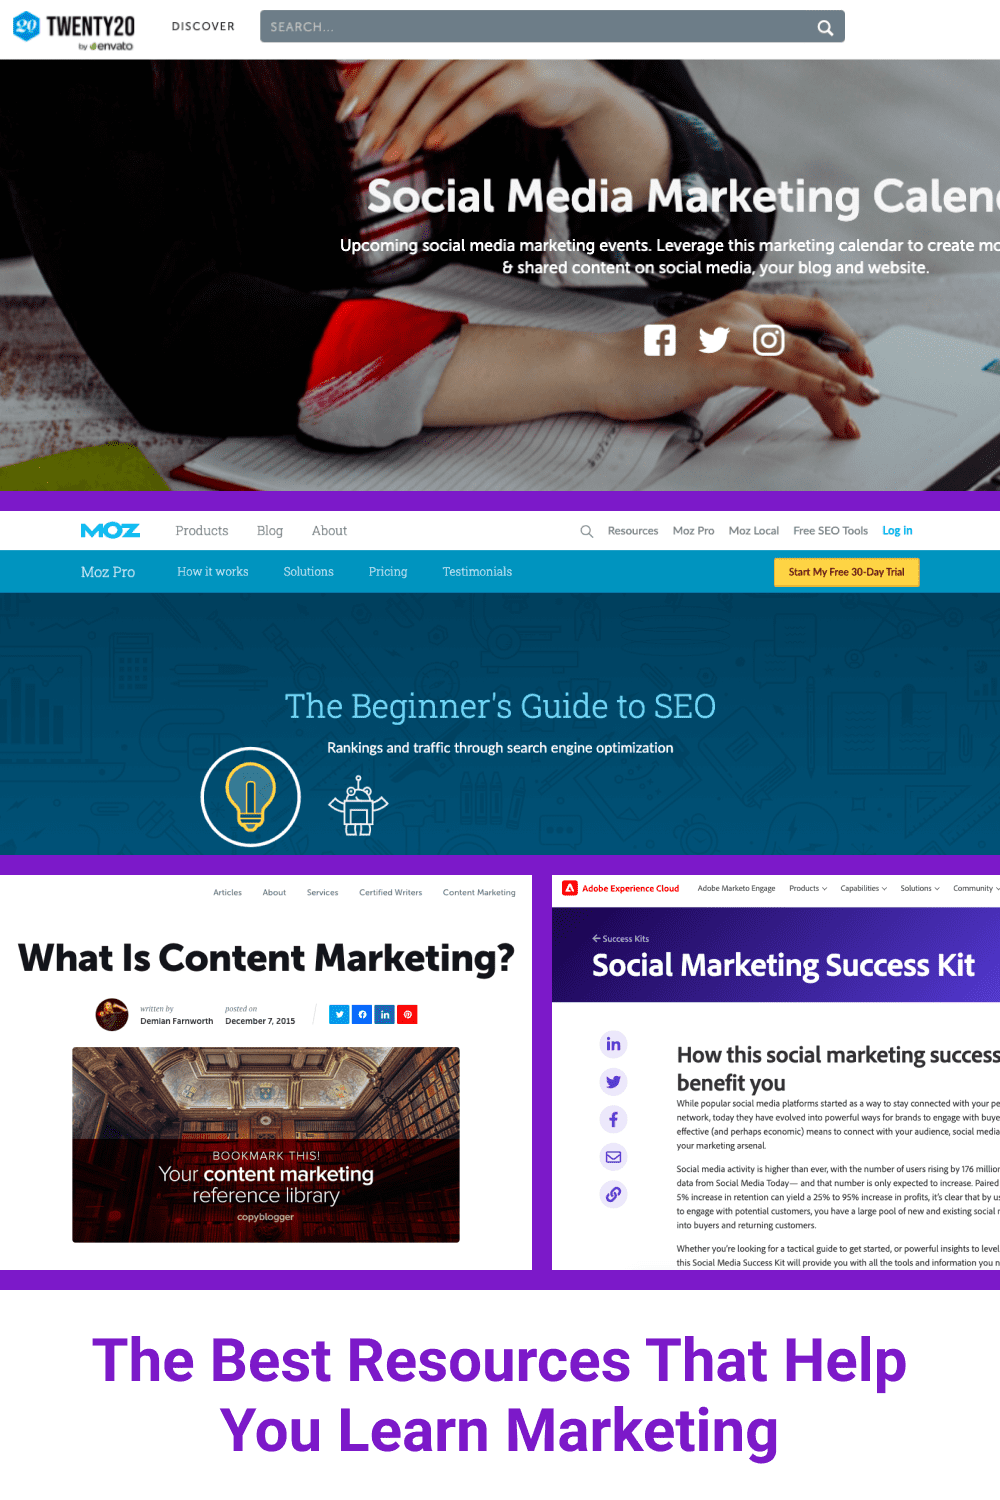 The Best Resources That Help You Learn Marketing.